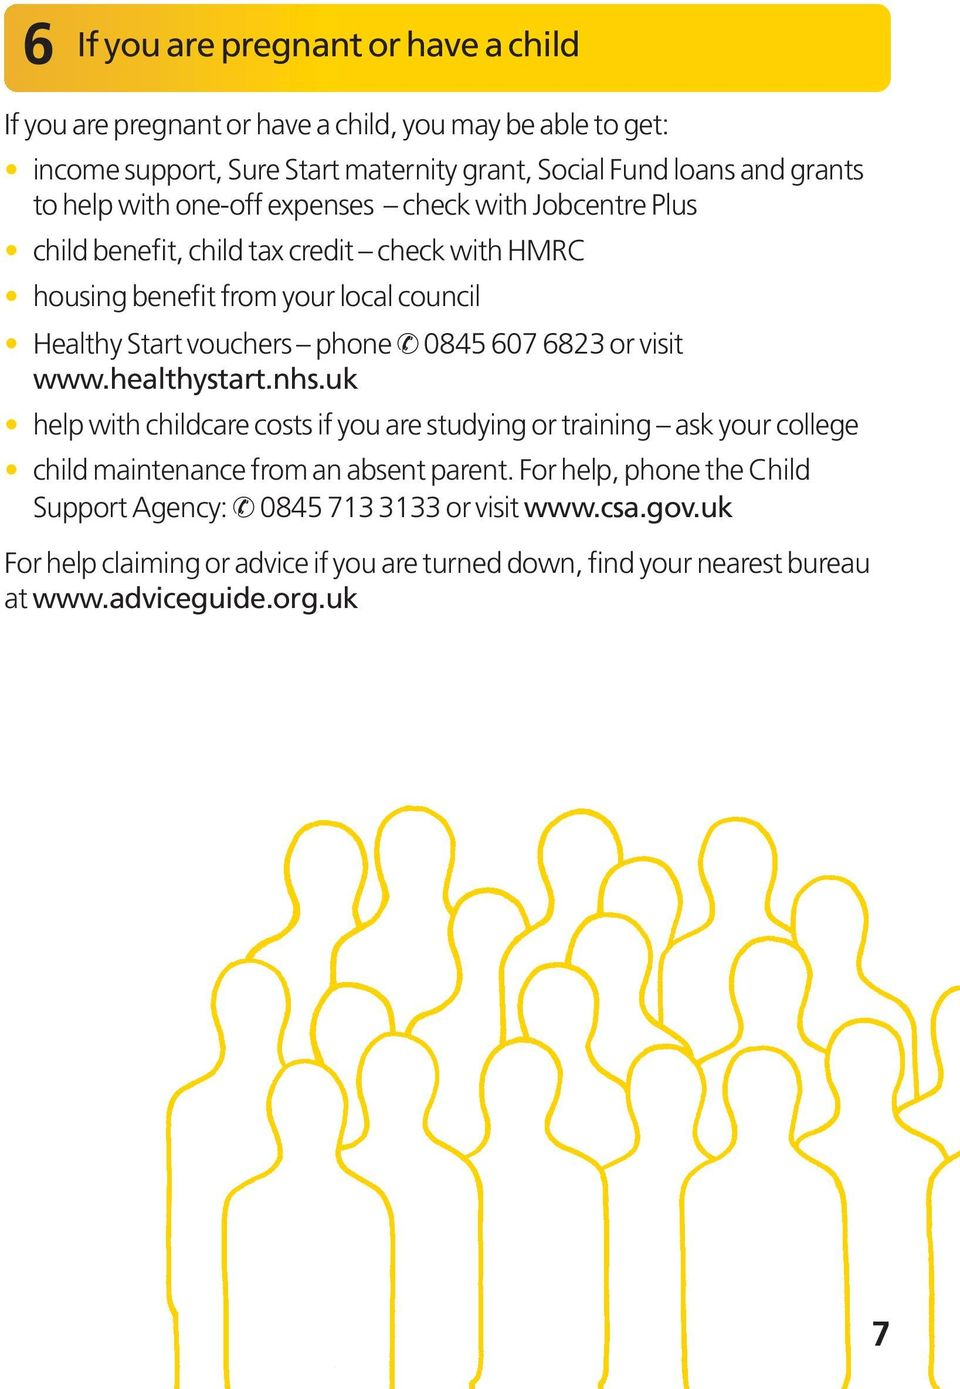 0845 607 6823 or visit www.healthystart.nhs.uk help with childcare costs if you are studying or training ask your college child maintenance from an absent parent.